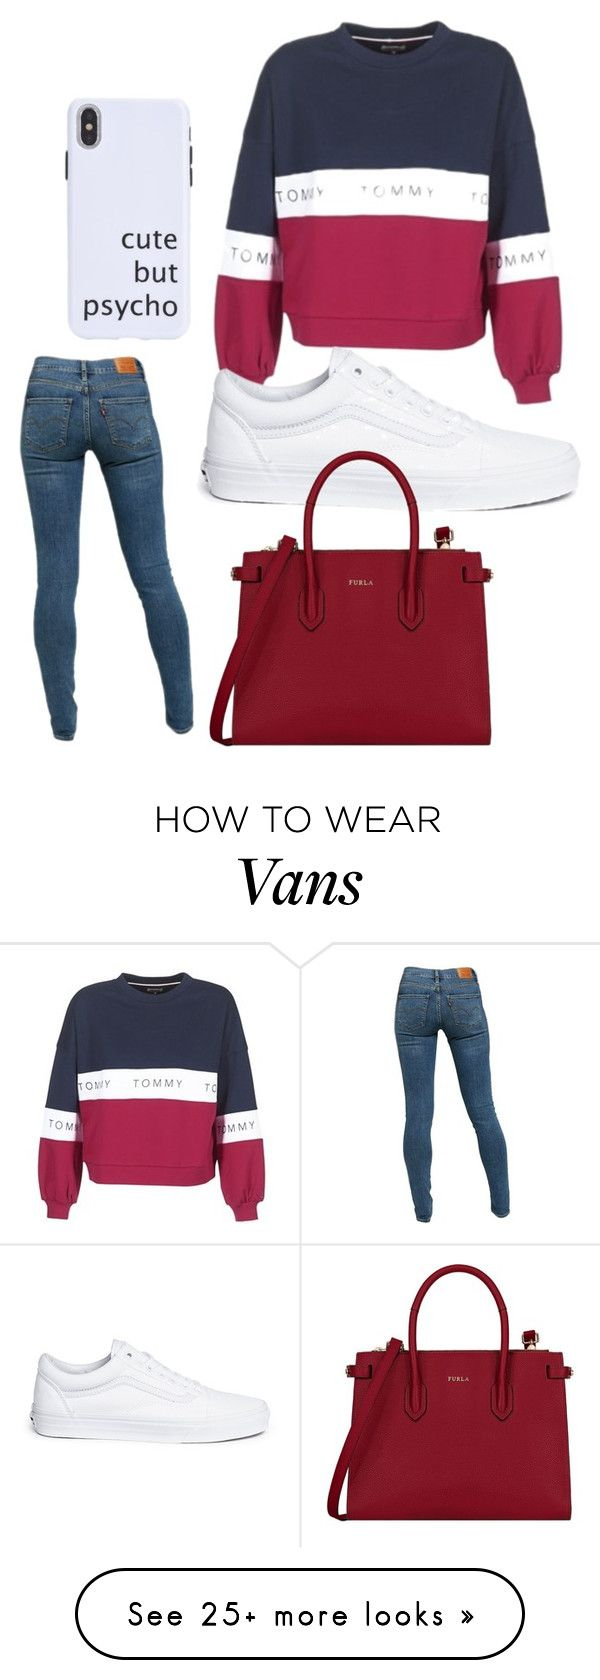 """cute but psycho"" by jaeherring14 on Polyvore featuring Tommy Hilfiger, Levi's, Vans and Furla"